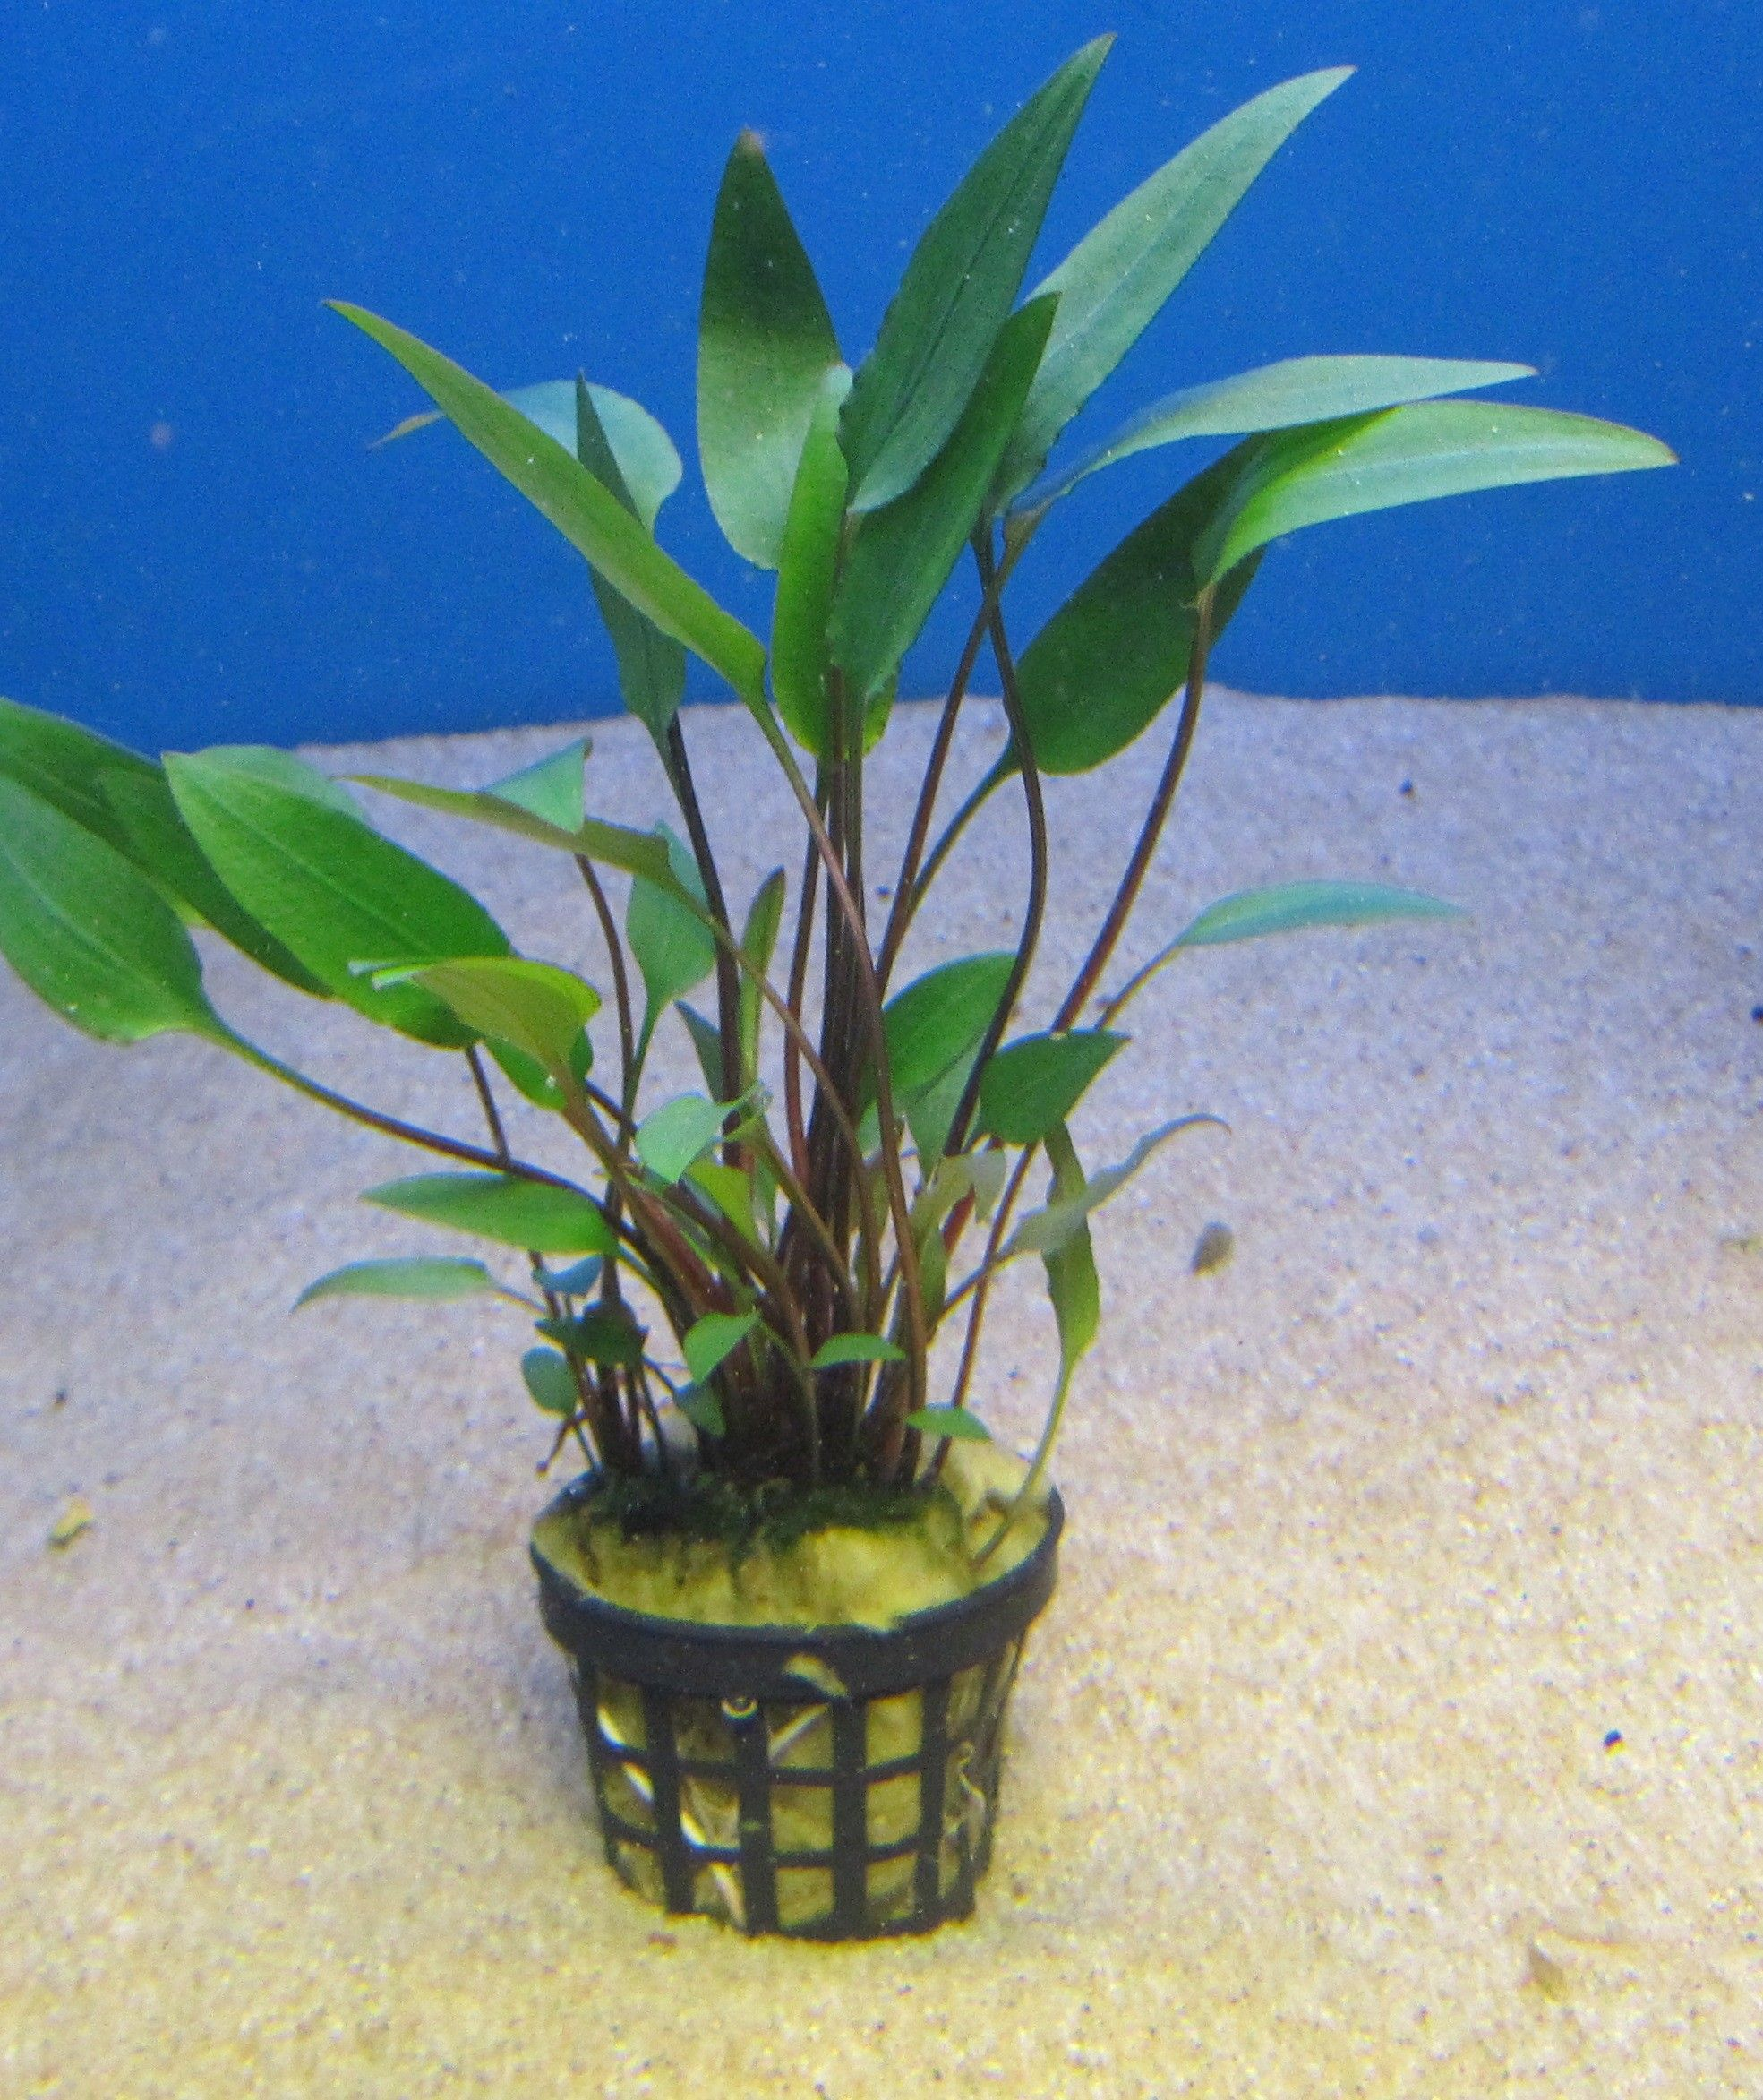 Cryptocoryne Walkeri.